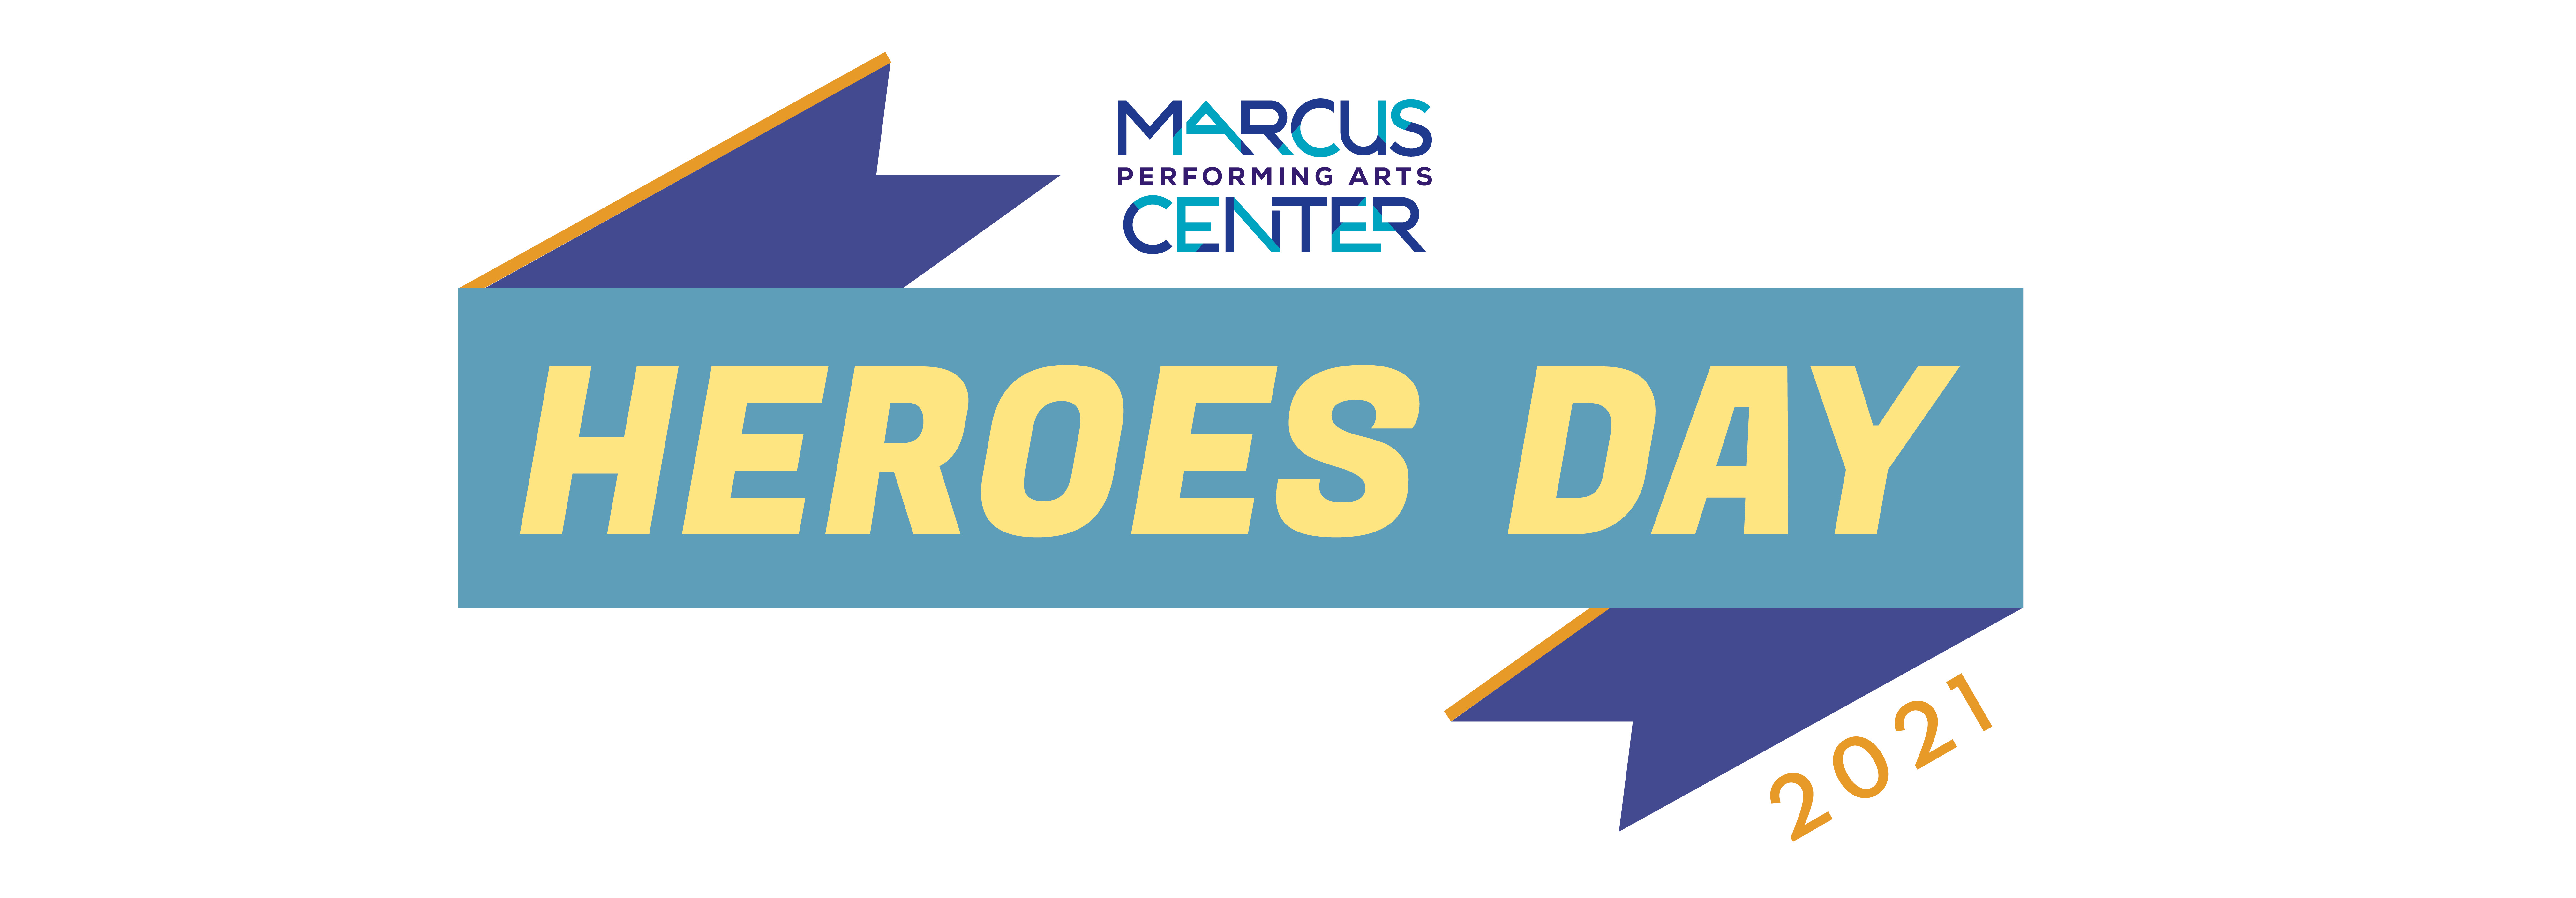 HEROES DAY AT THE MARCUS PERFORMING ARTS CENTER IN MILWAUKEE